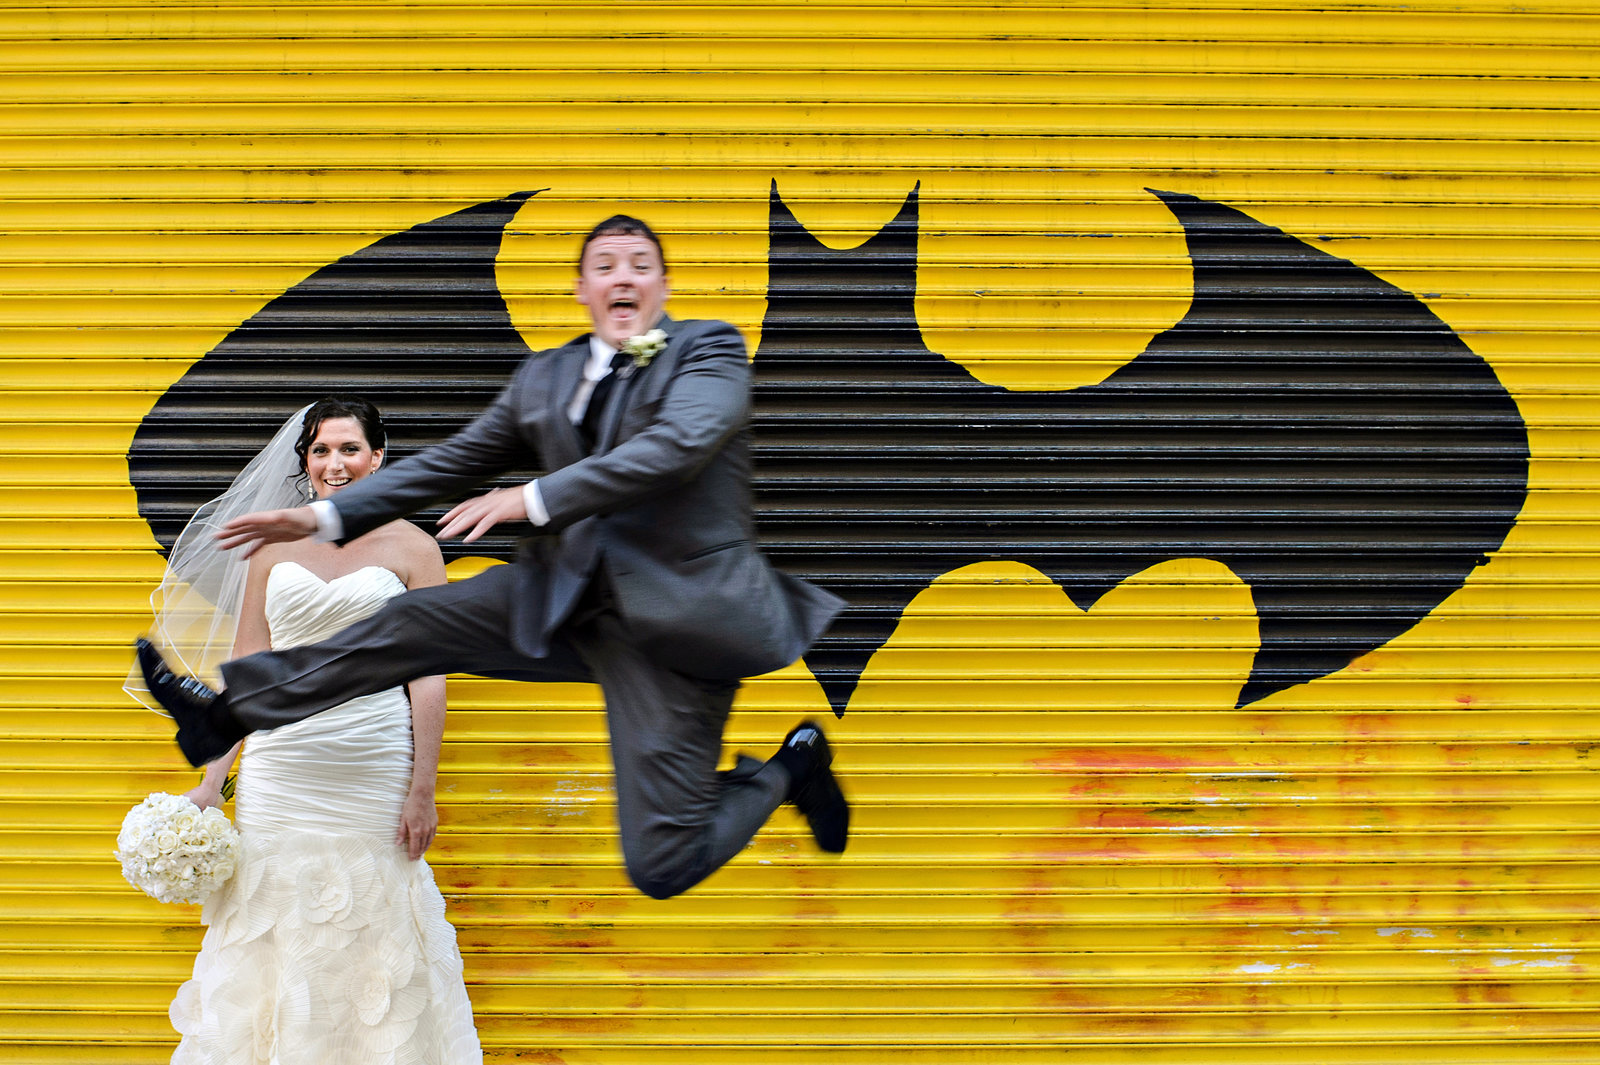 A wedding couple jump for love in front of batman graffiti on South Street in Philadelphia.